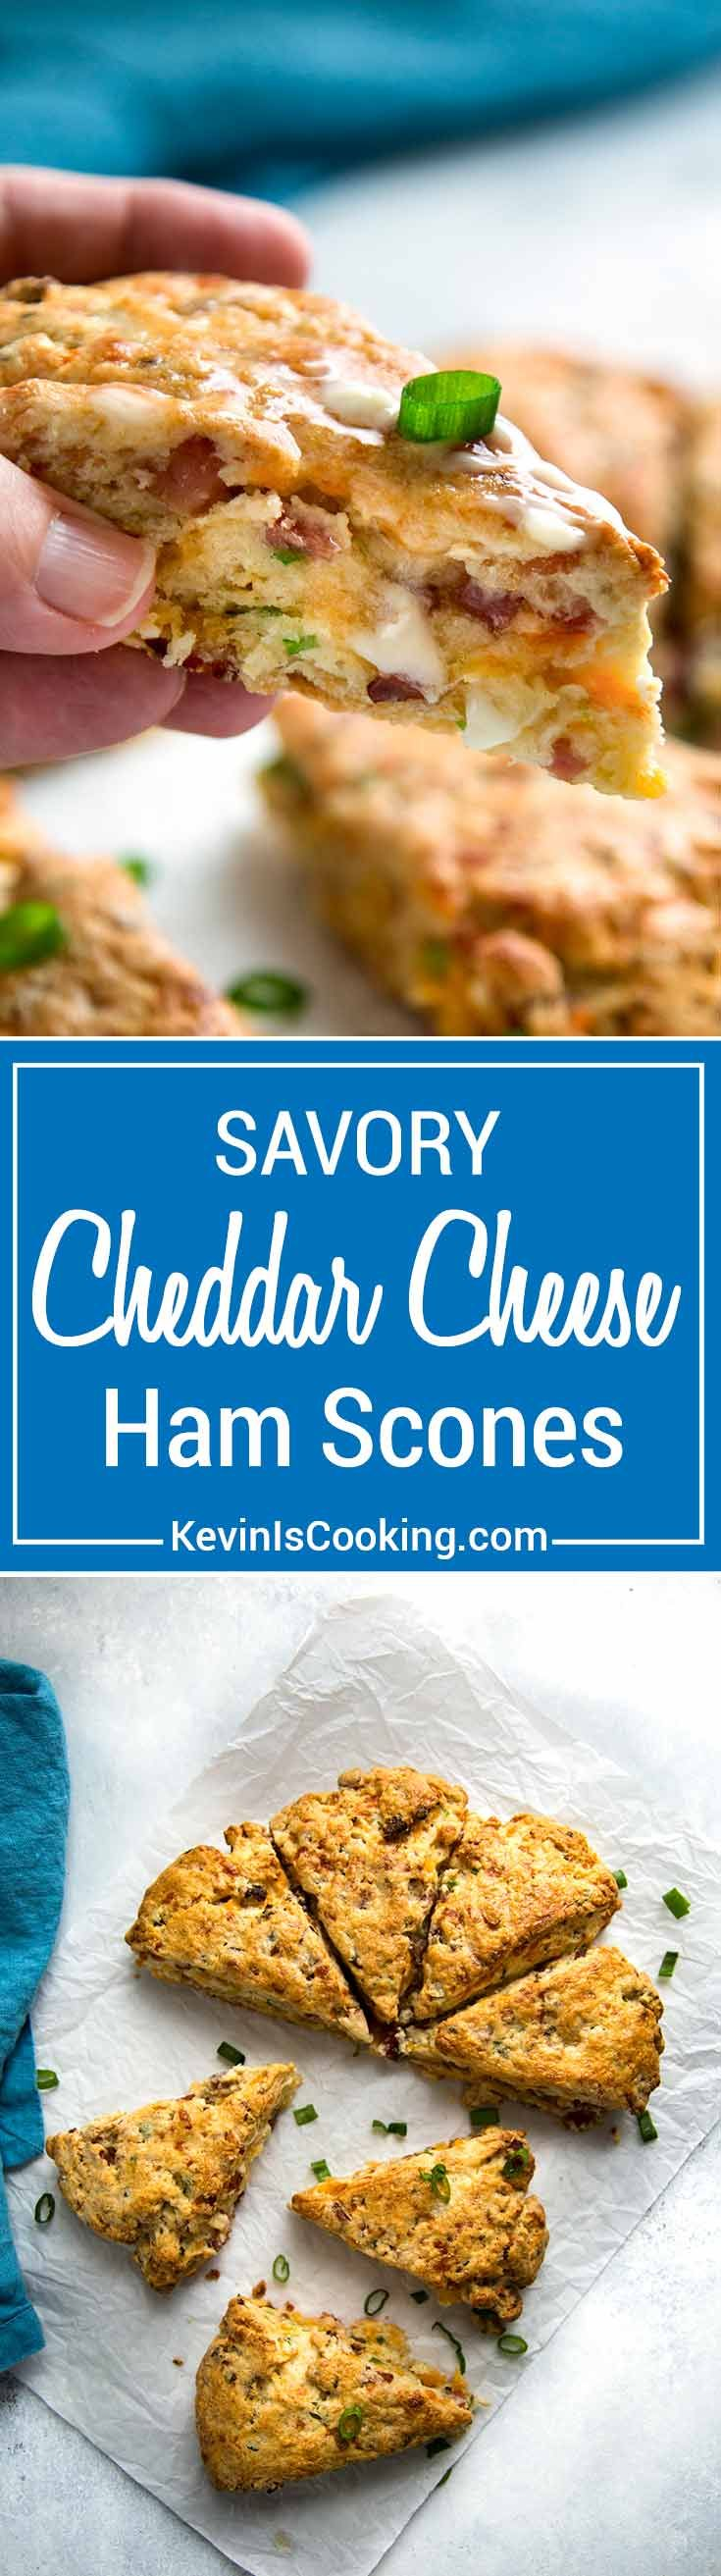 Warm, tender and flakey, these Ham and Cheese Scones make the most of any leftover holiday ham made with cheddar cheese and green onions for one savory scone!  via @keviniscooking